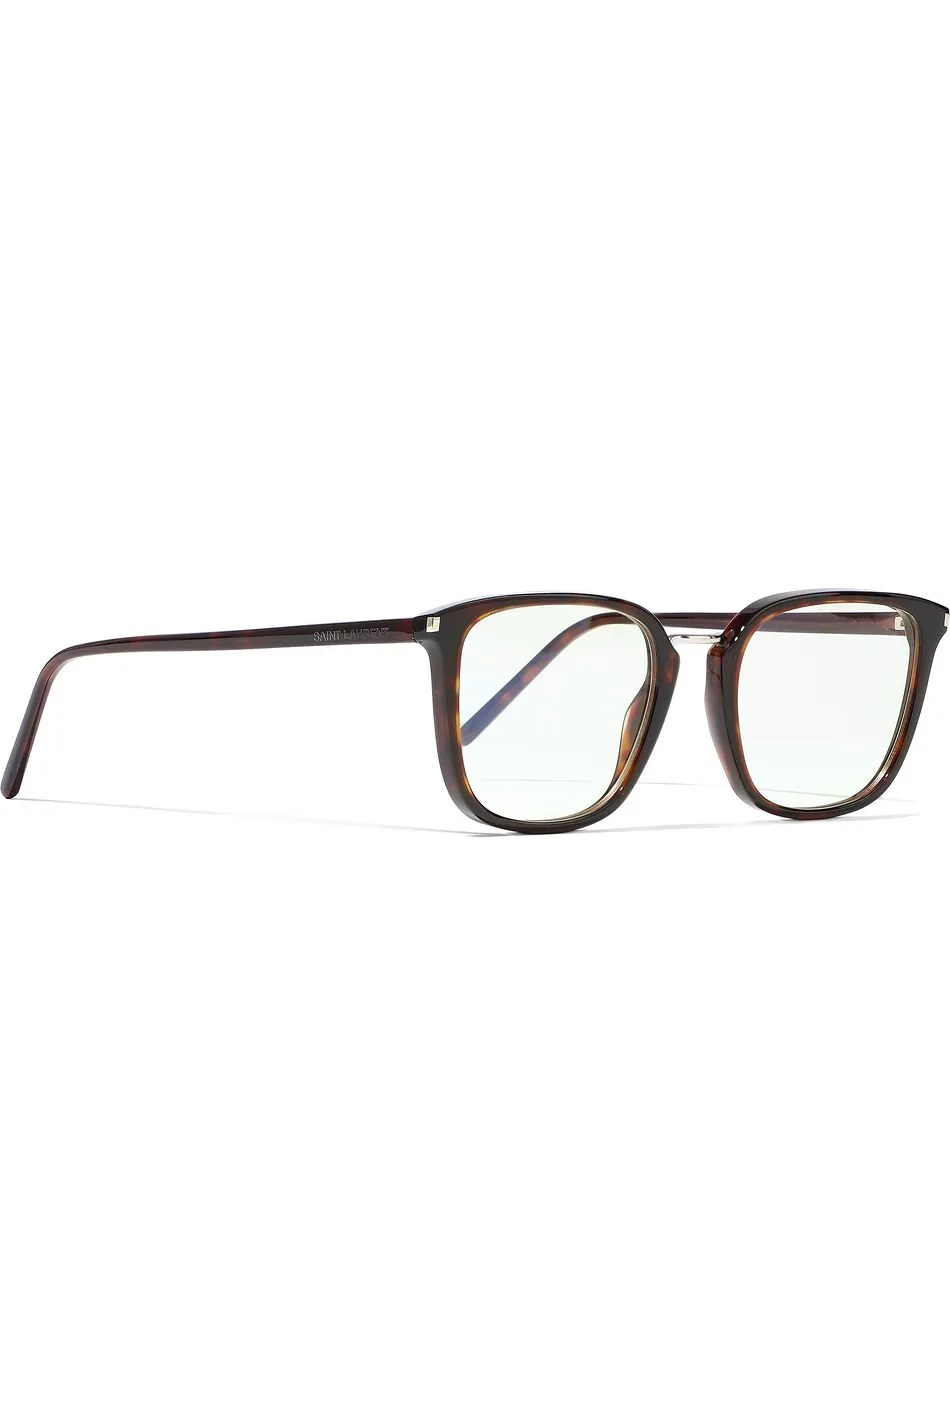 SAINT LAURENT SQUARE FRAME TORTOISESHELL ACETATE OPTICAL GLASSES